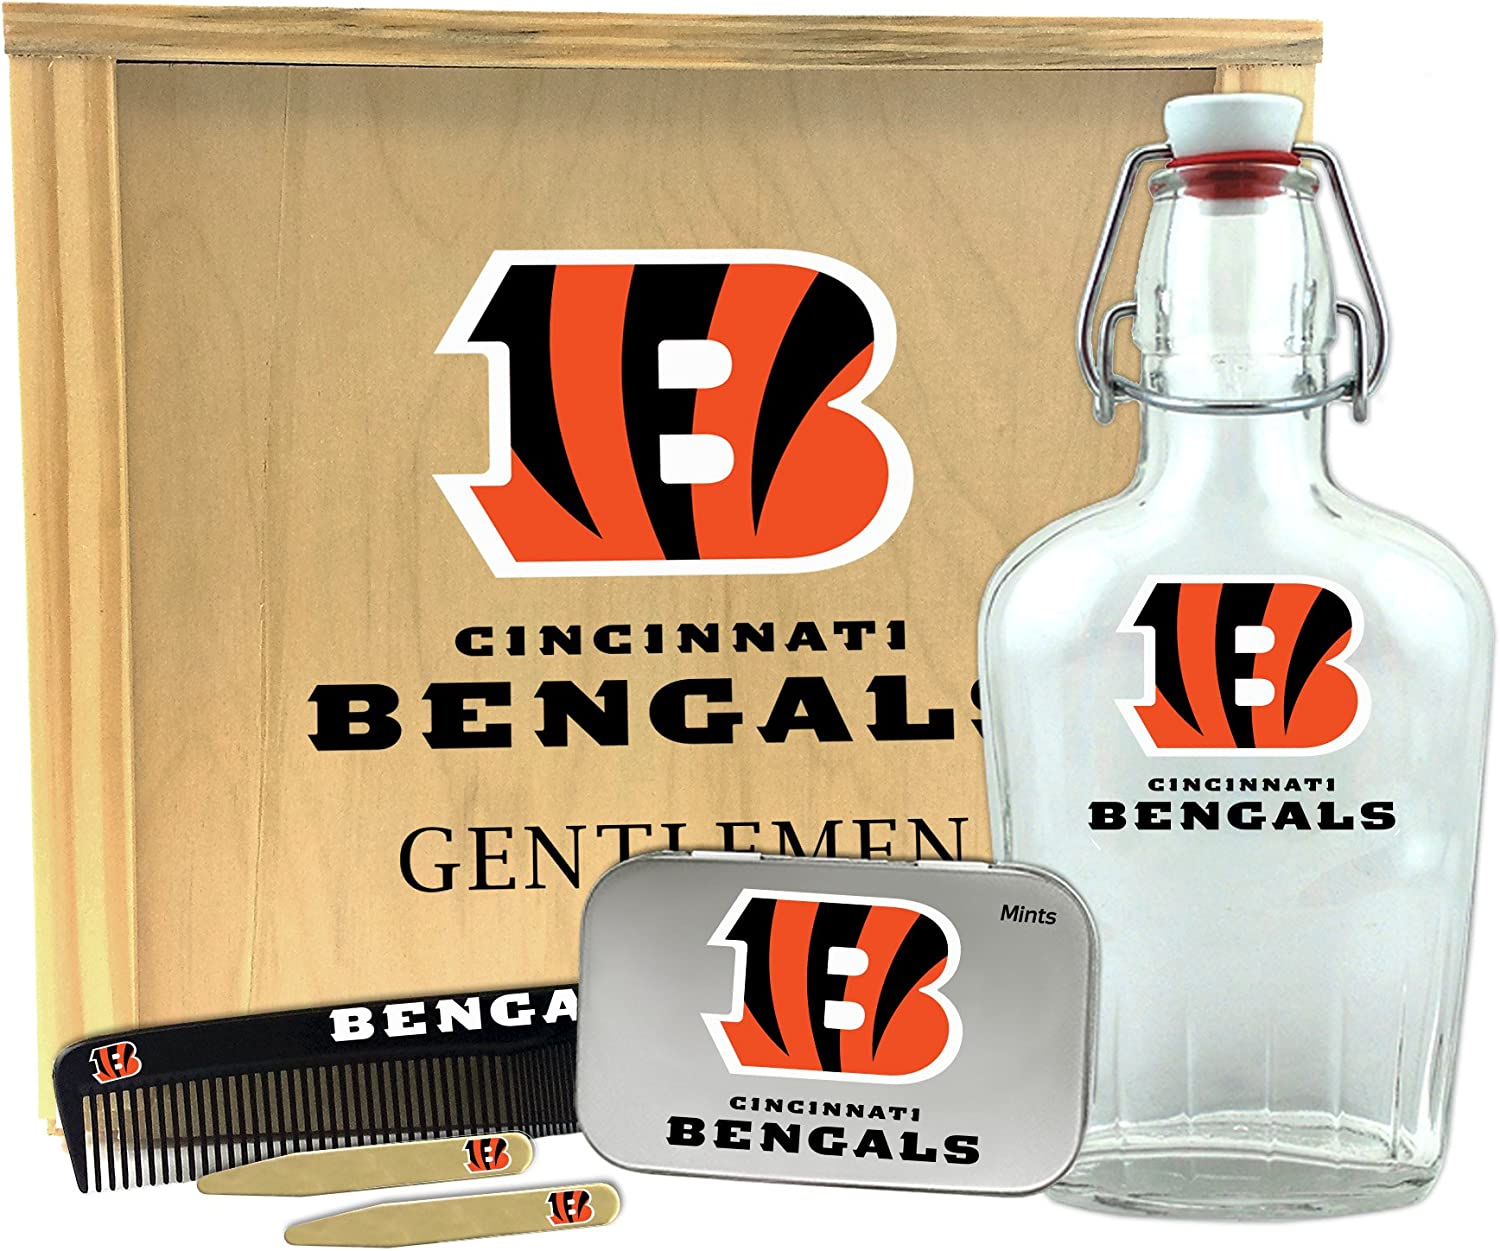 10 x 9 x 3.75 Worthy Promo NFL Cleveland Browns Gentlemens Gift Box-Toiletry Edition 1-250 ml Glass Swing-Top Bottle